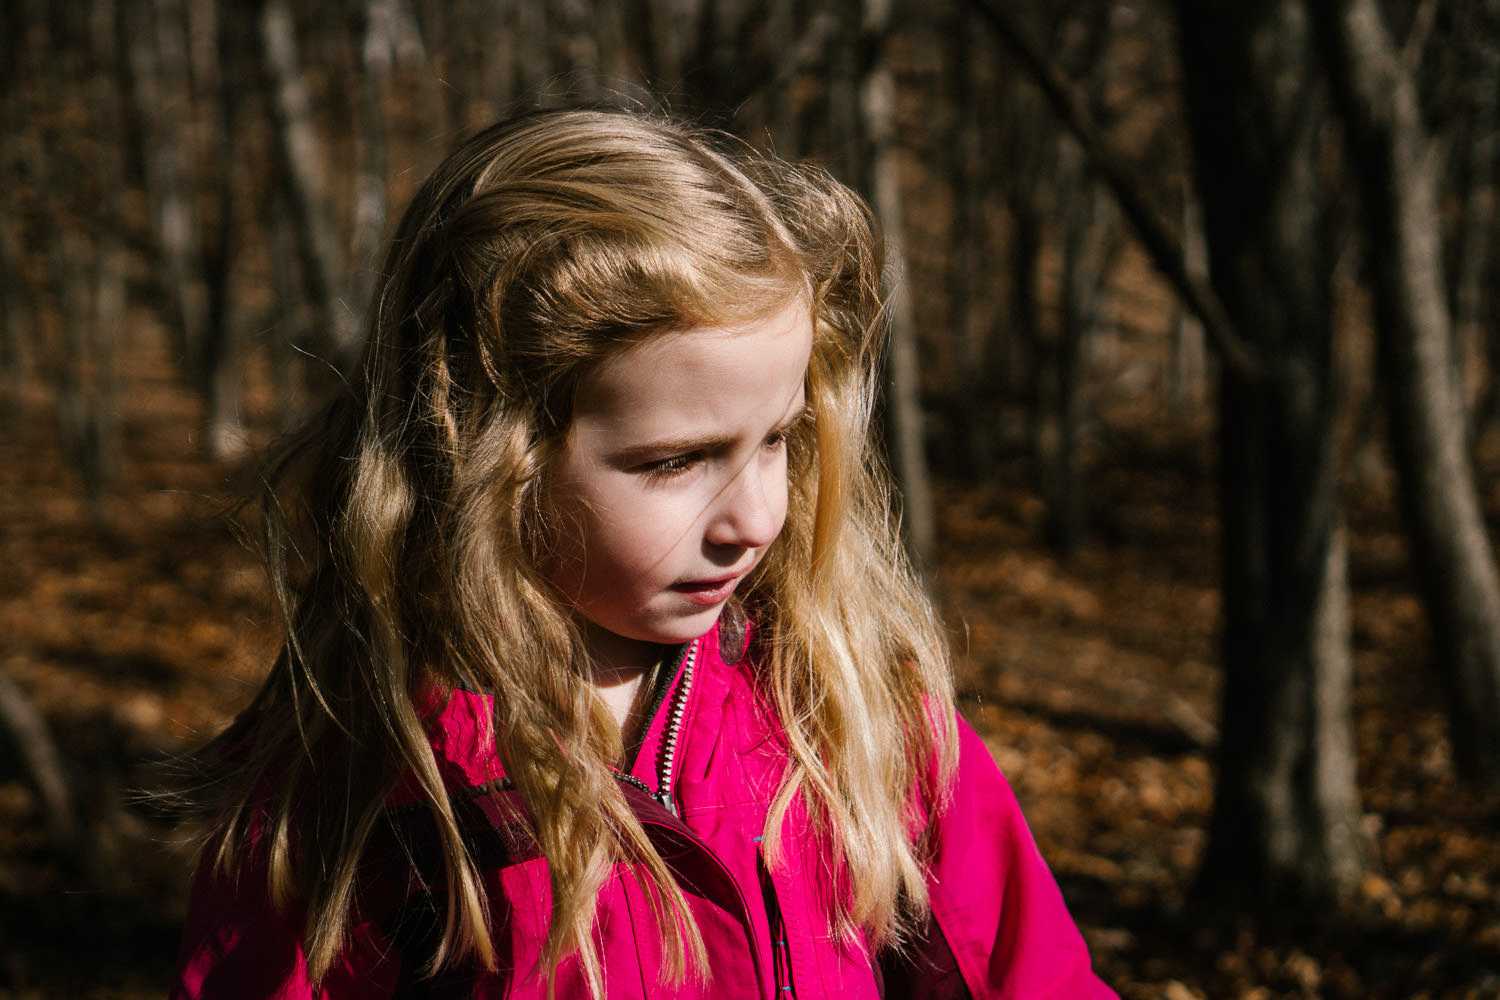 A portrait of a little girl in a pink coat in the woods.